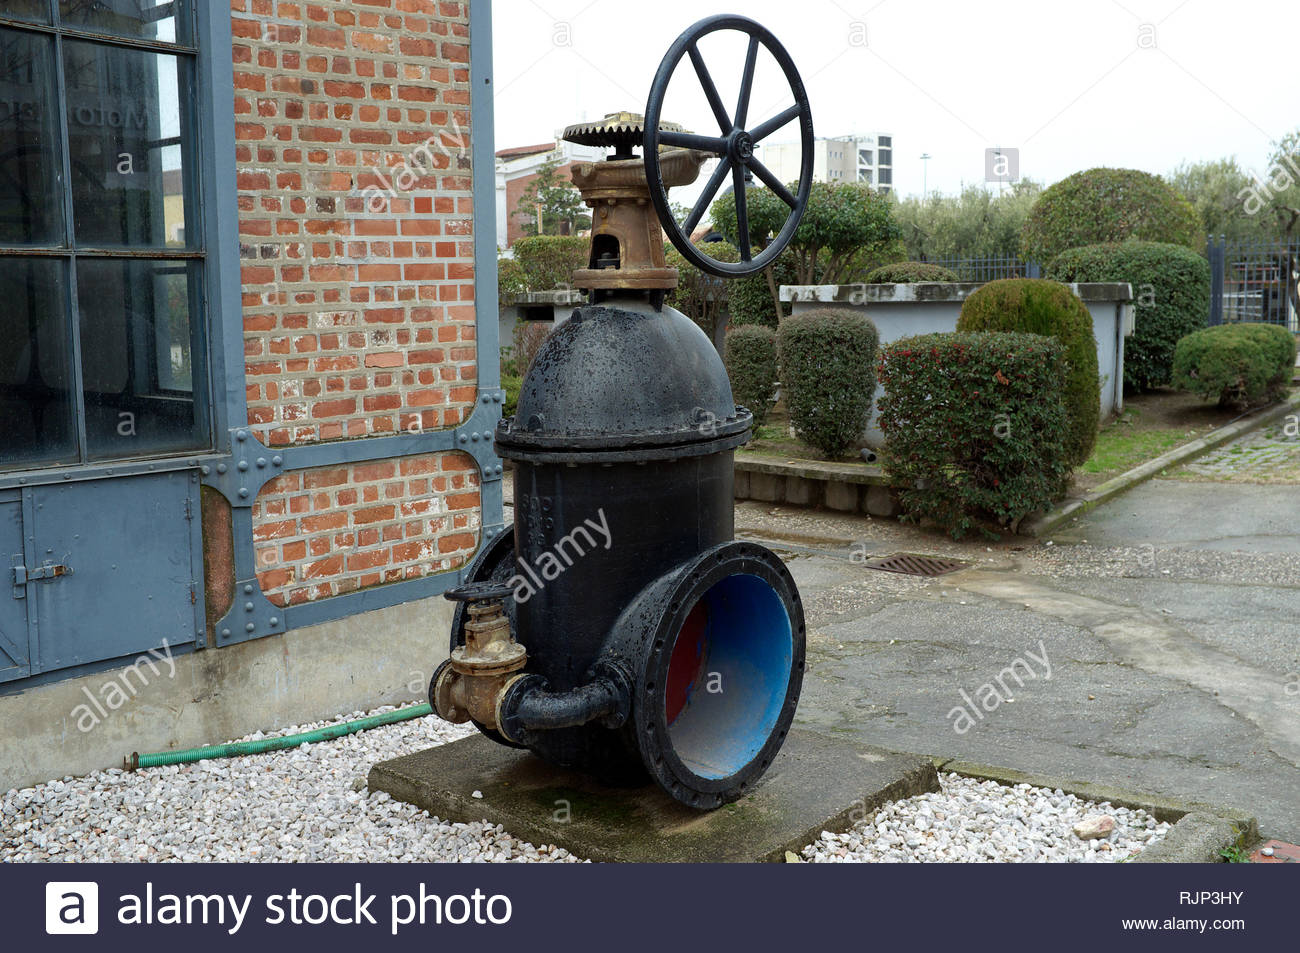 Water Museum - a large valve on display outside the museum in Thessaloniki, Central Macedonia, Greece. Stock Photo